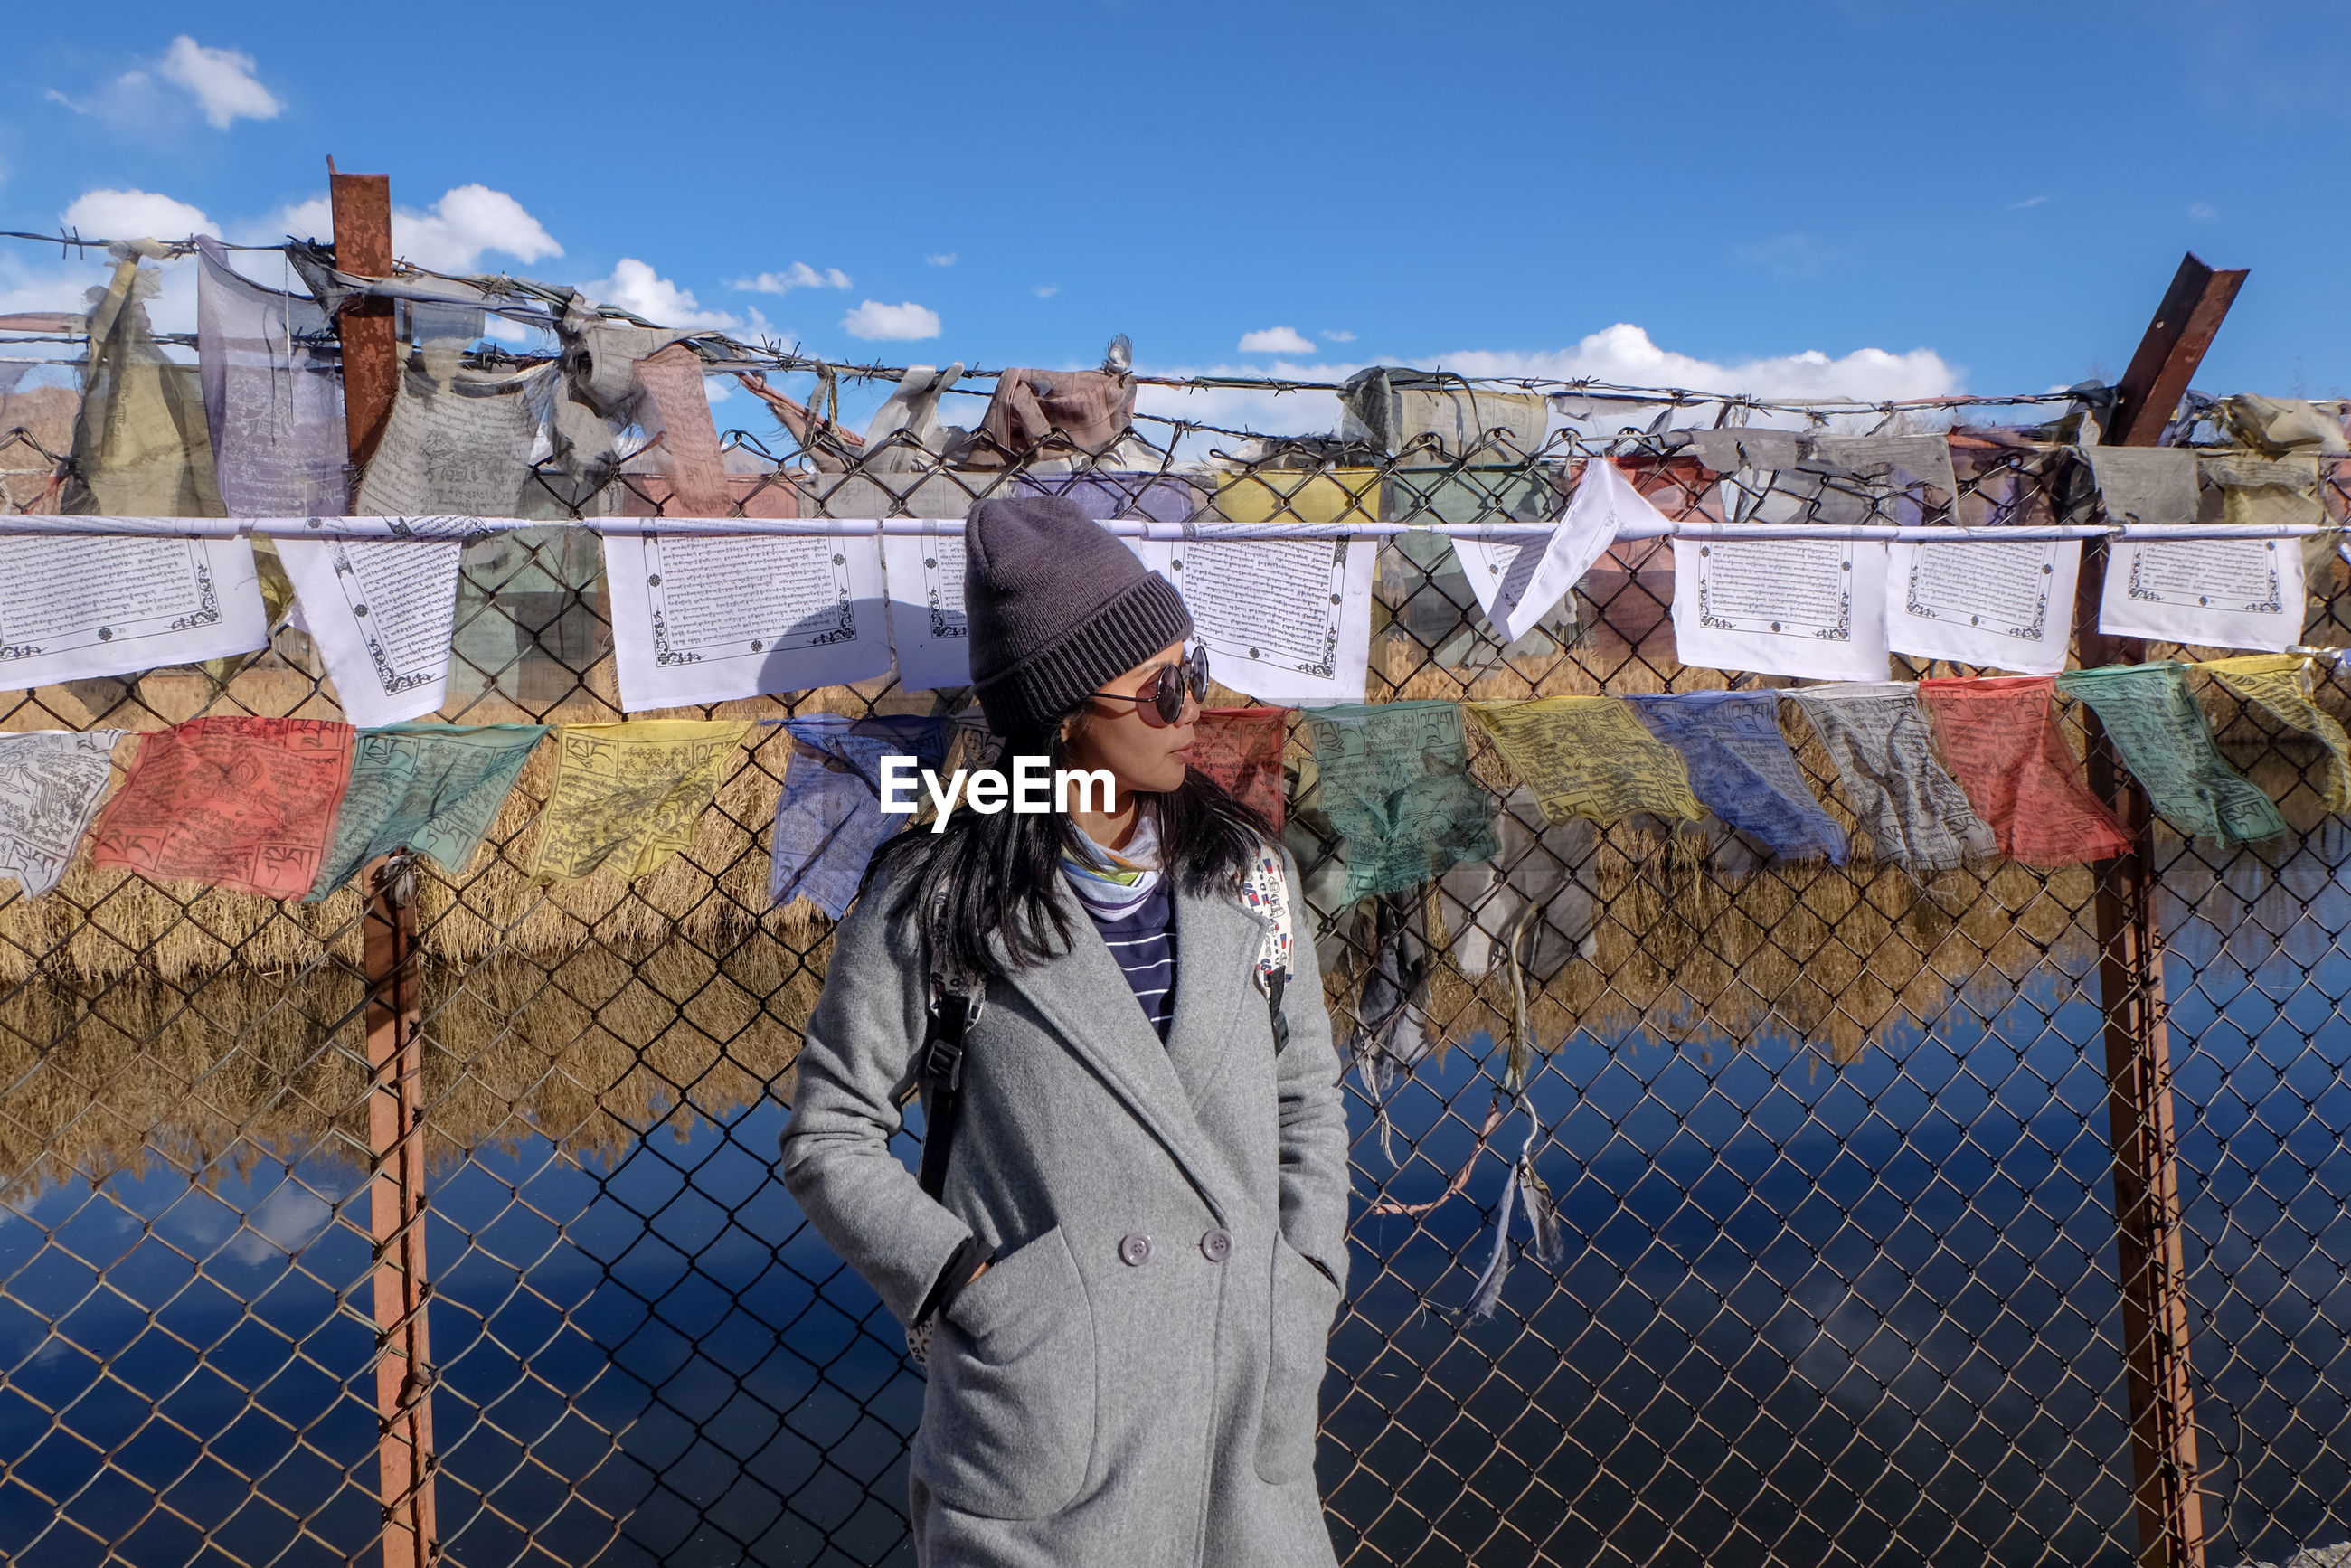 Woman wearing warm clothing while standing against fence and prayer flags